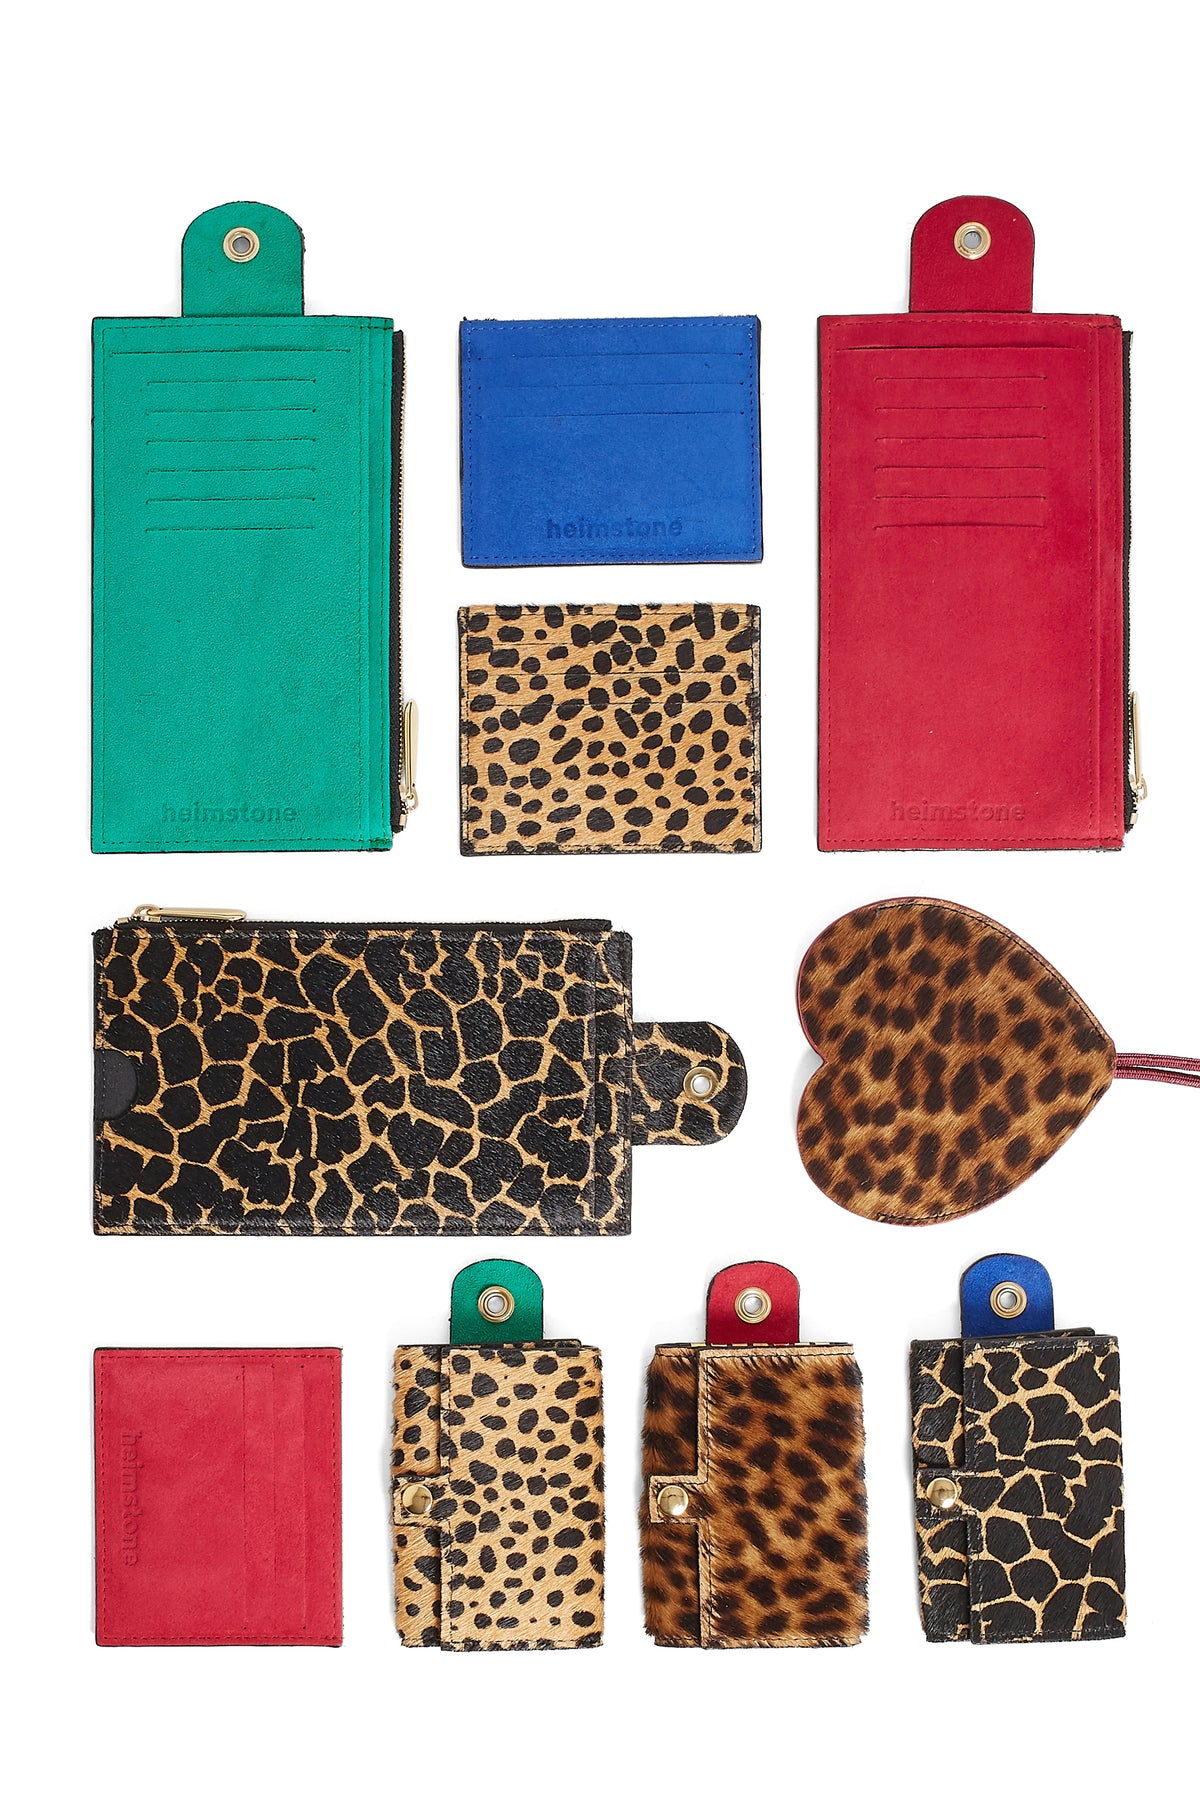 The Minis - 6 Key Holder in Giraffe printed leather